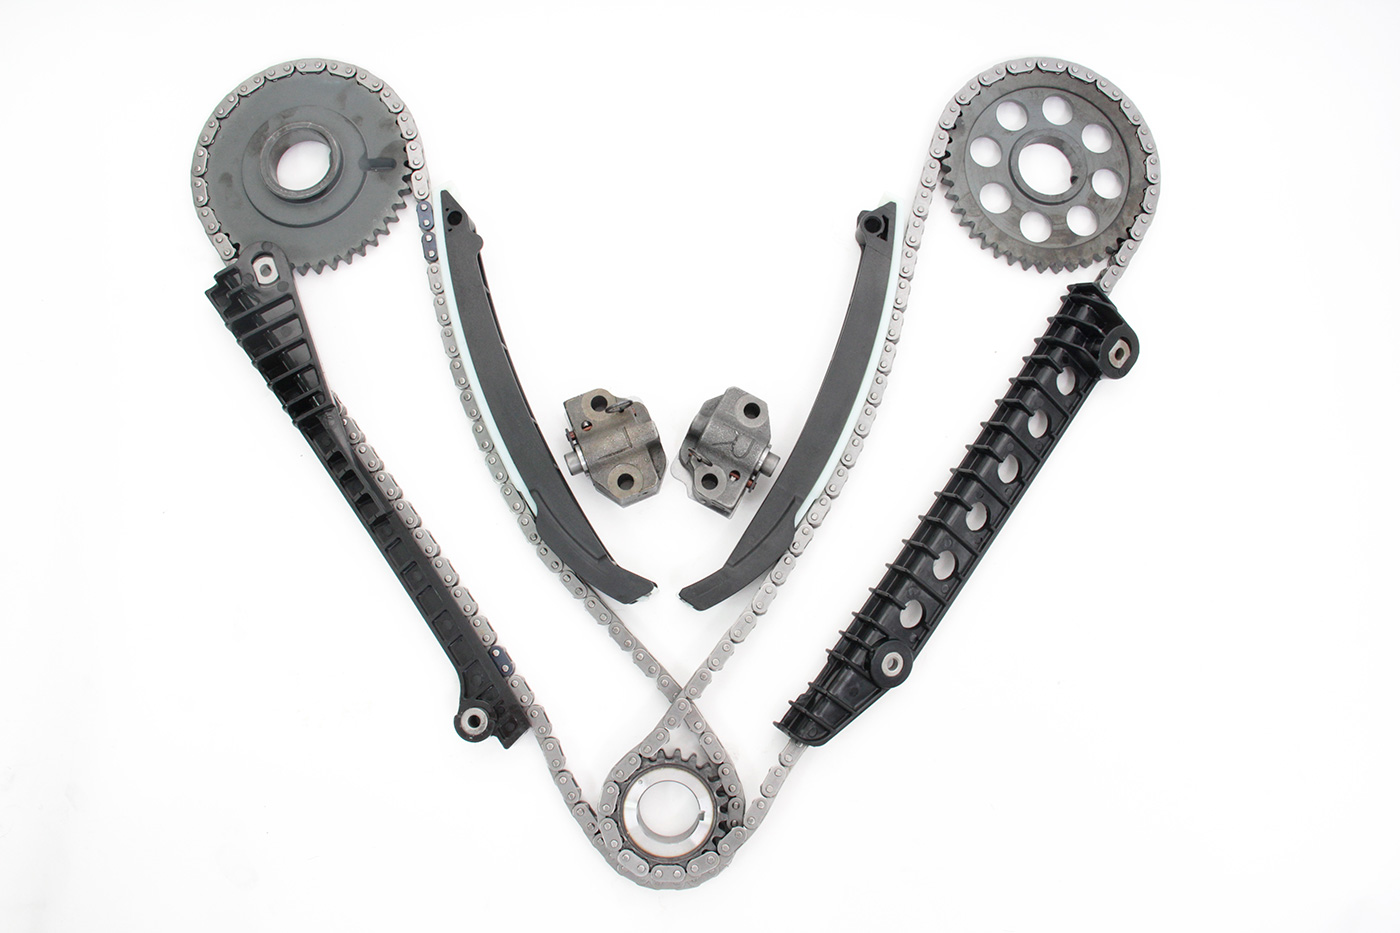 Timing Chain Kit Ford F150, F250, Expedition 5.4Lts Motor